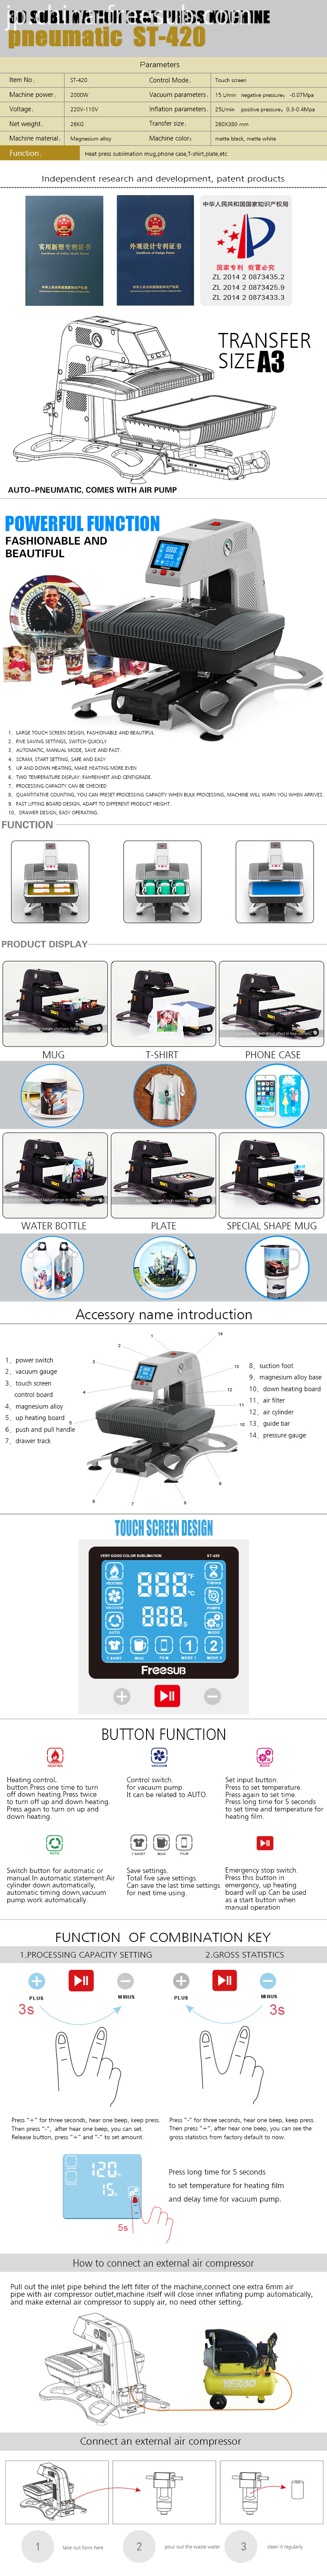 FREESUB Phone case heat transfer machine on sale